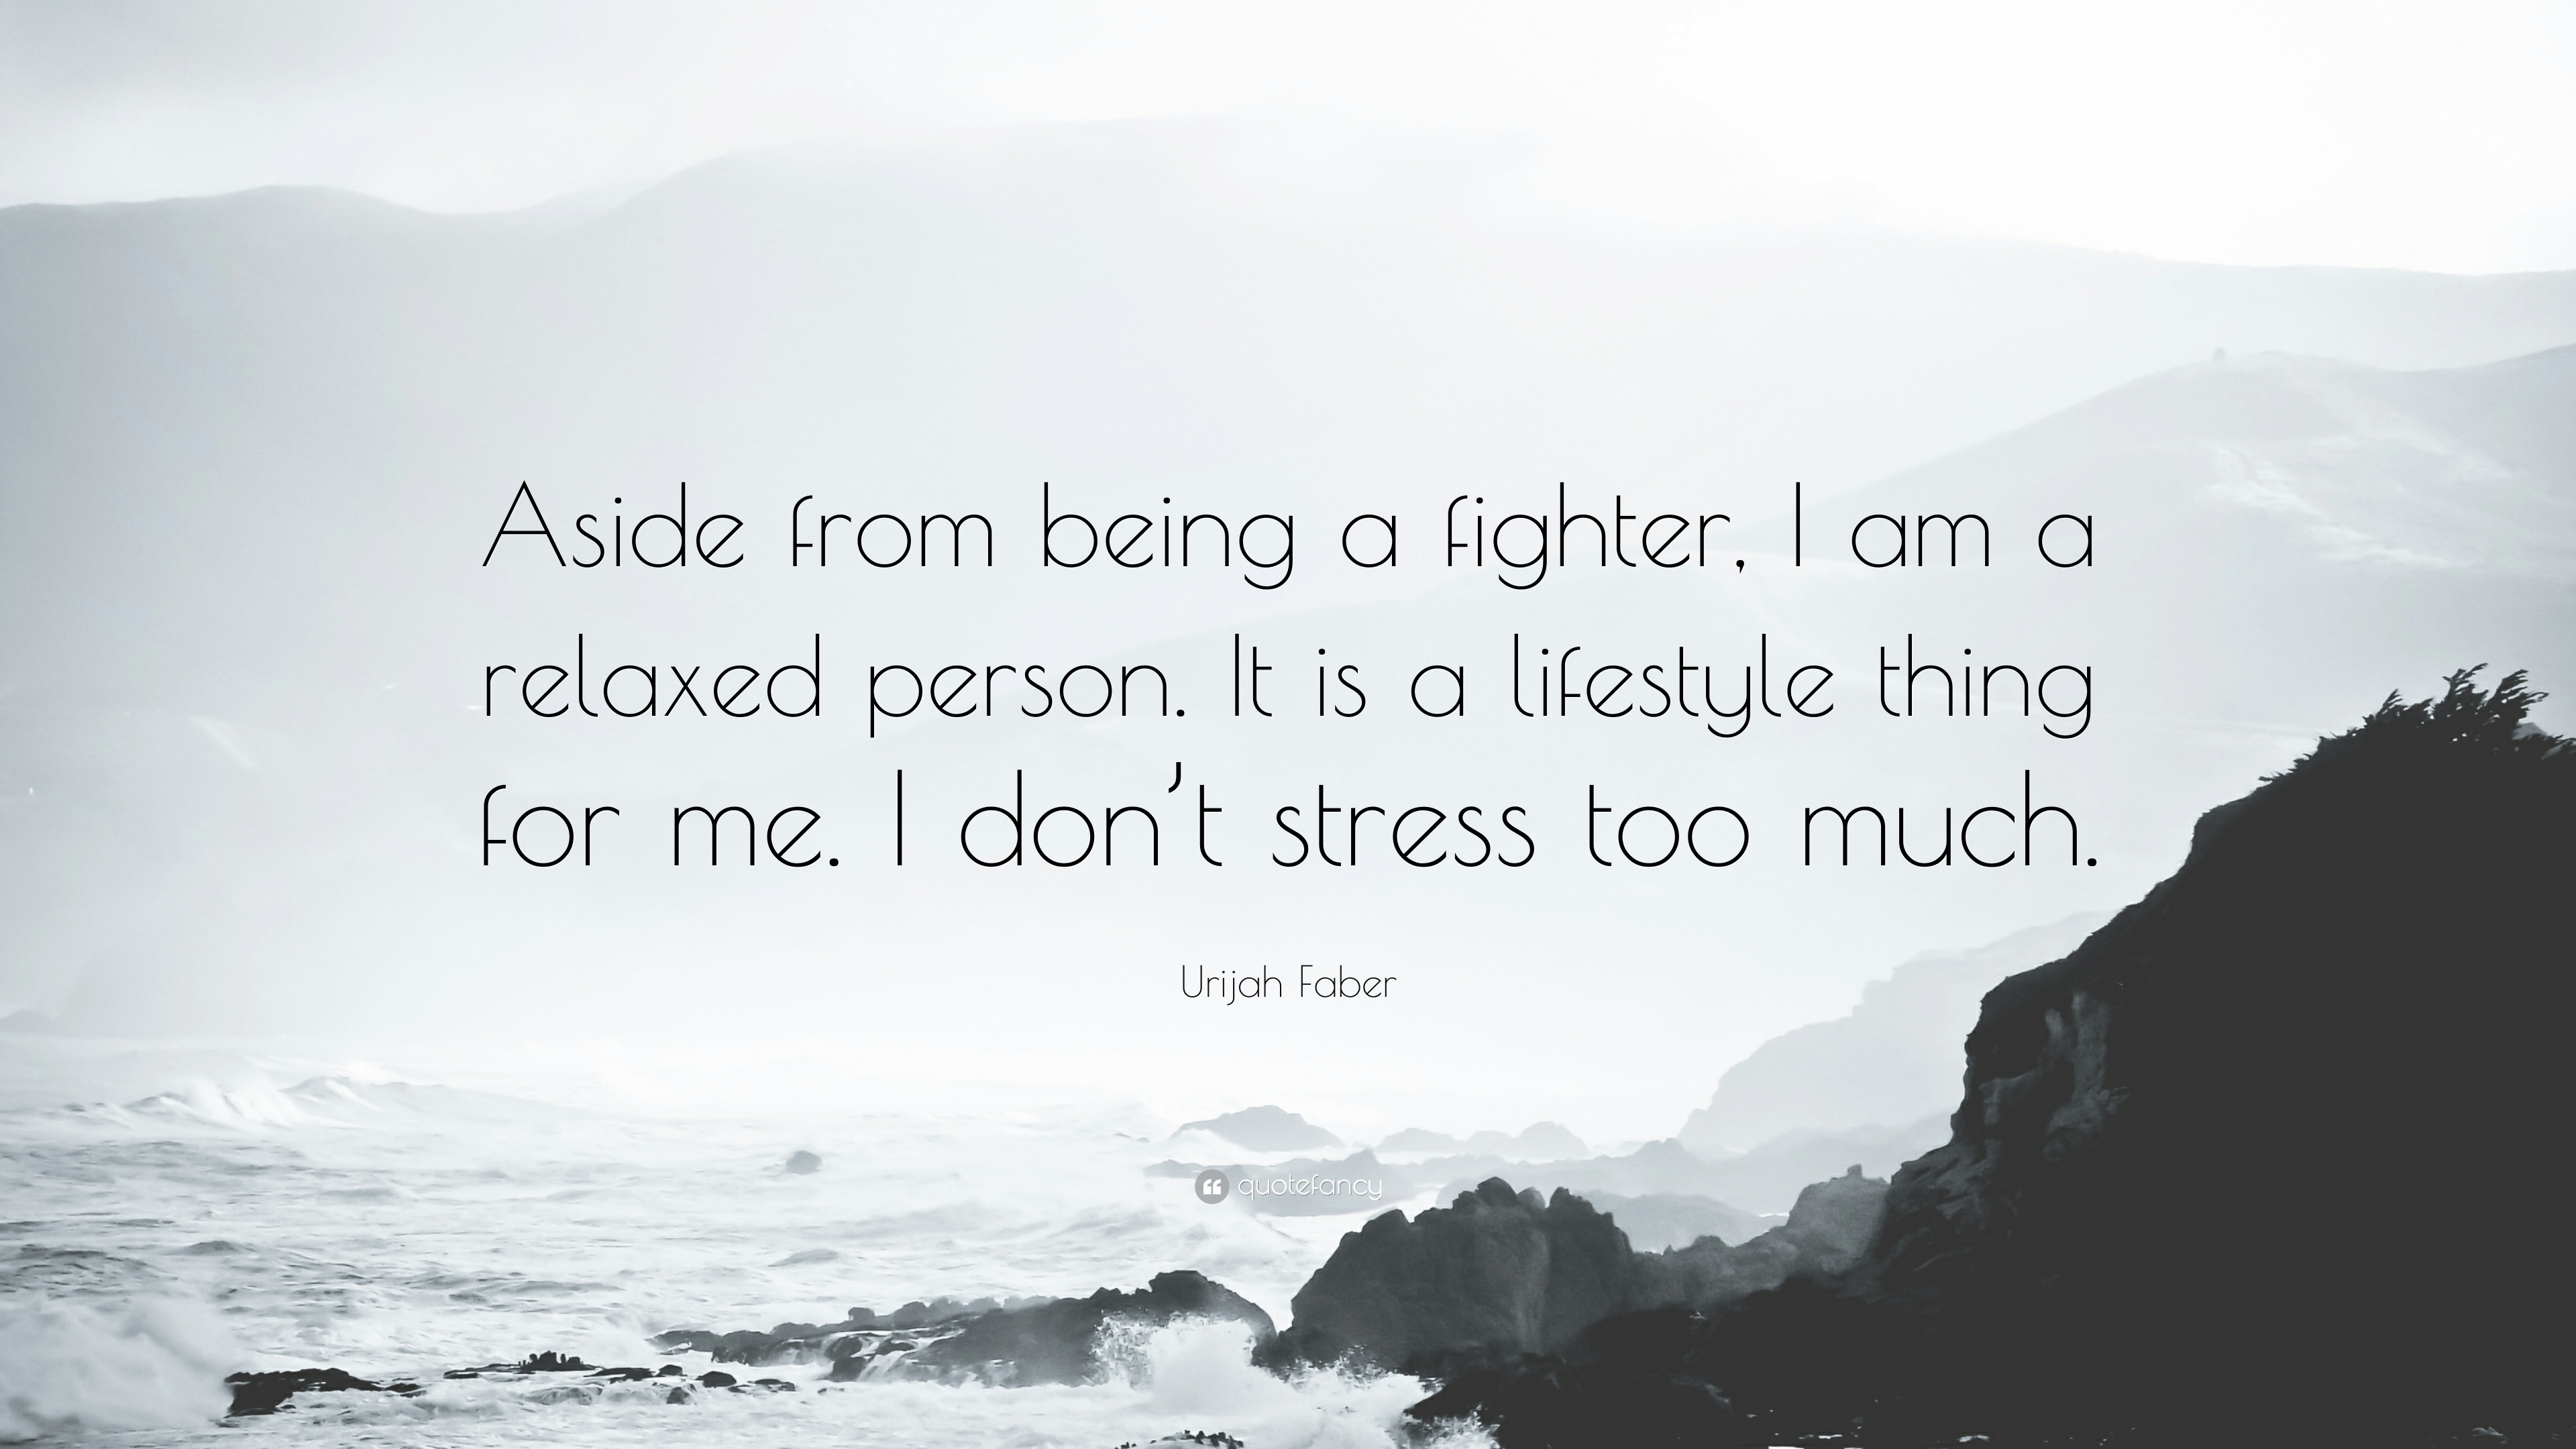 Urijah Faber Quote Aside From Being A Fighter I Am A Relaxed